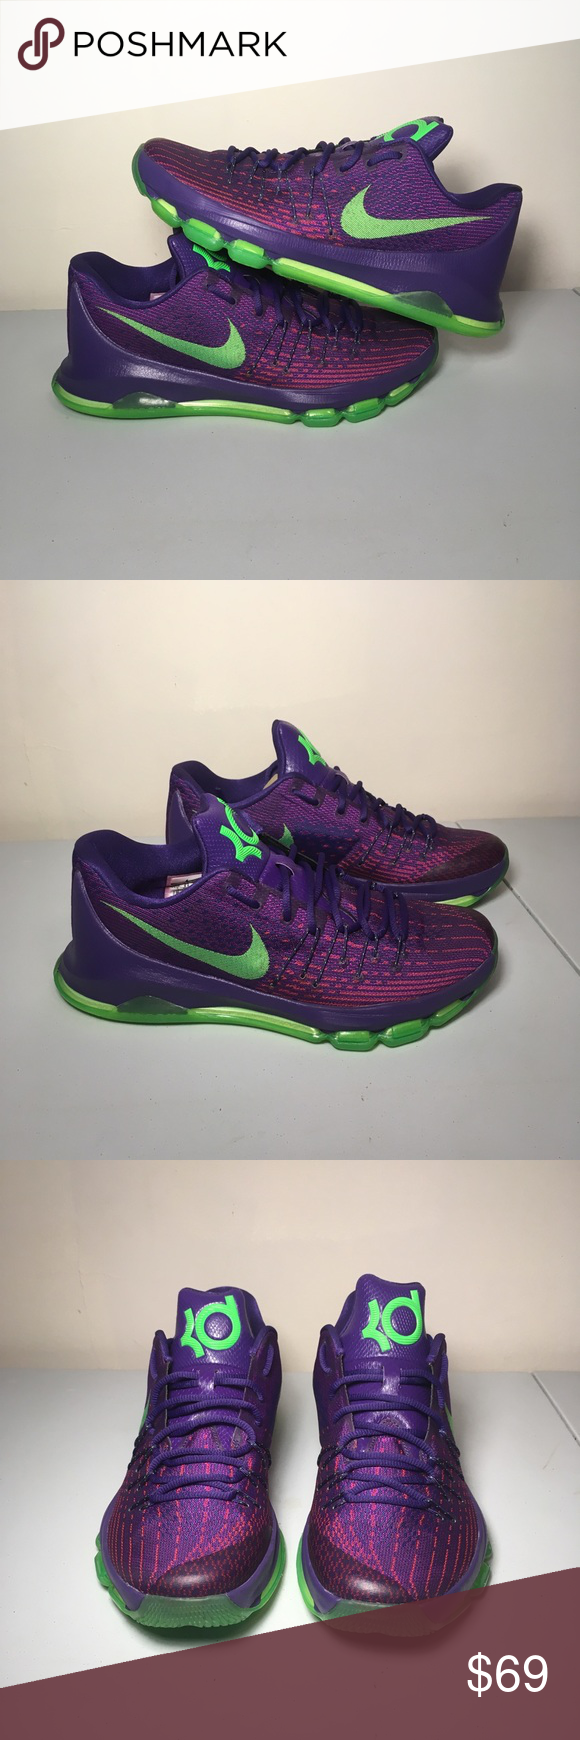 separation shoes 51bd4 96953 New Nike KD 8 VIII Men s Size 10.5 Nike KD 8 Suit VIII Purple Green Kevin